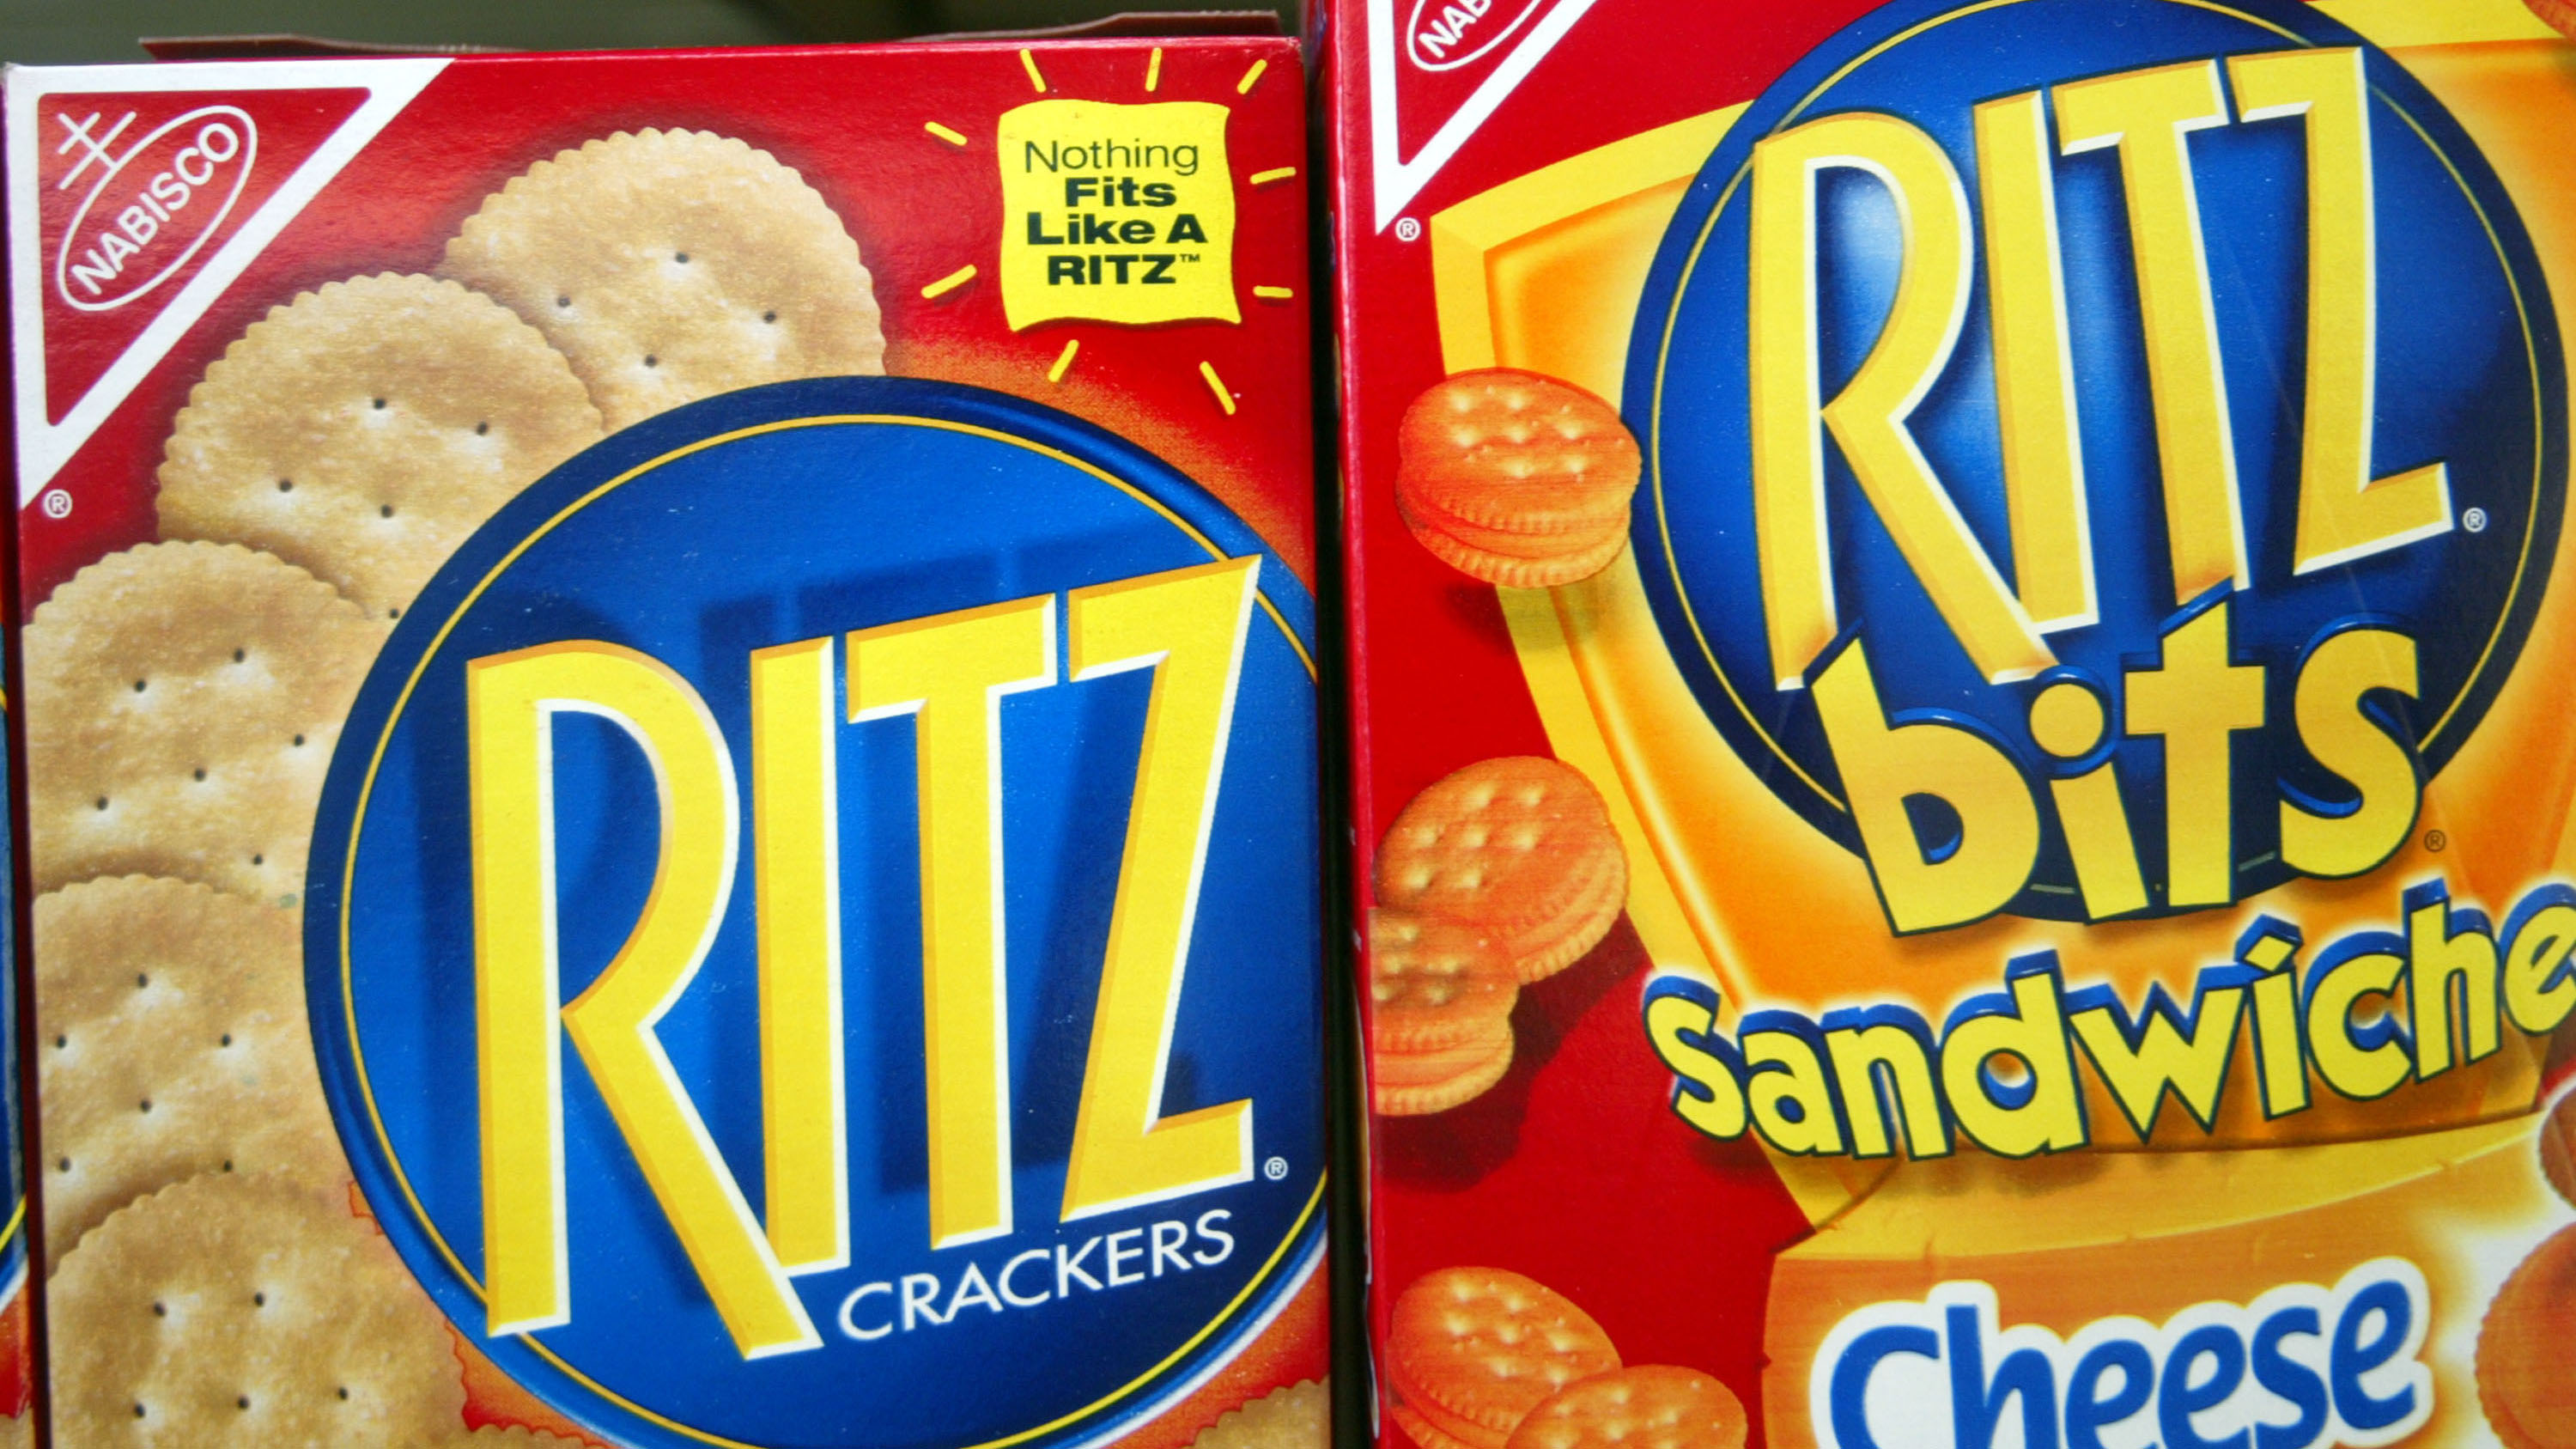 In this July 1, 2003, file photo, Ritz crackers are displayed on a store shelf in Miami, Florida.